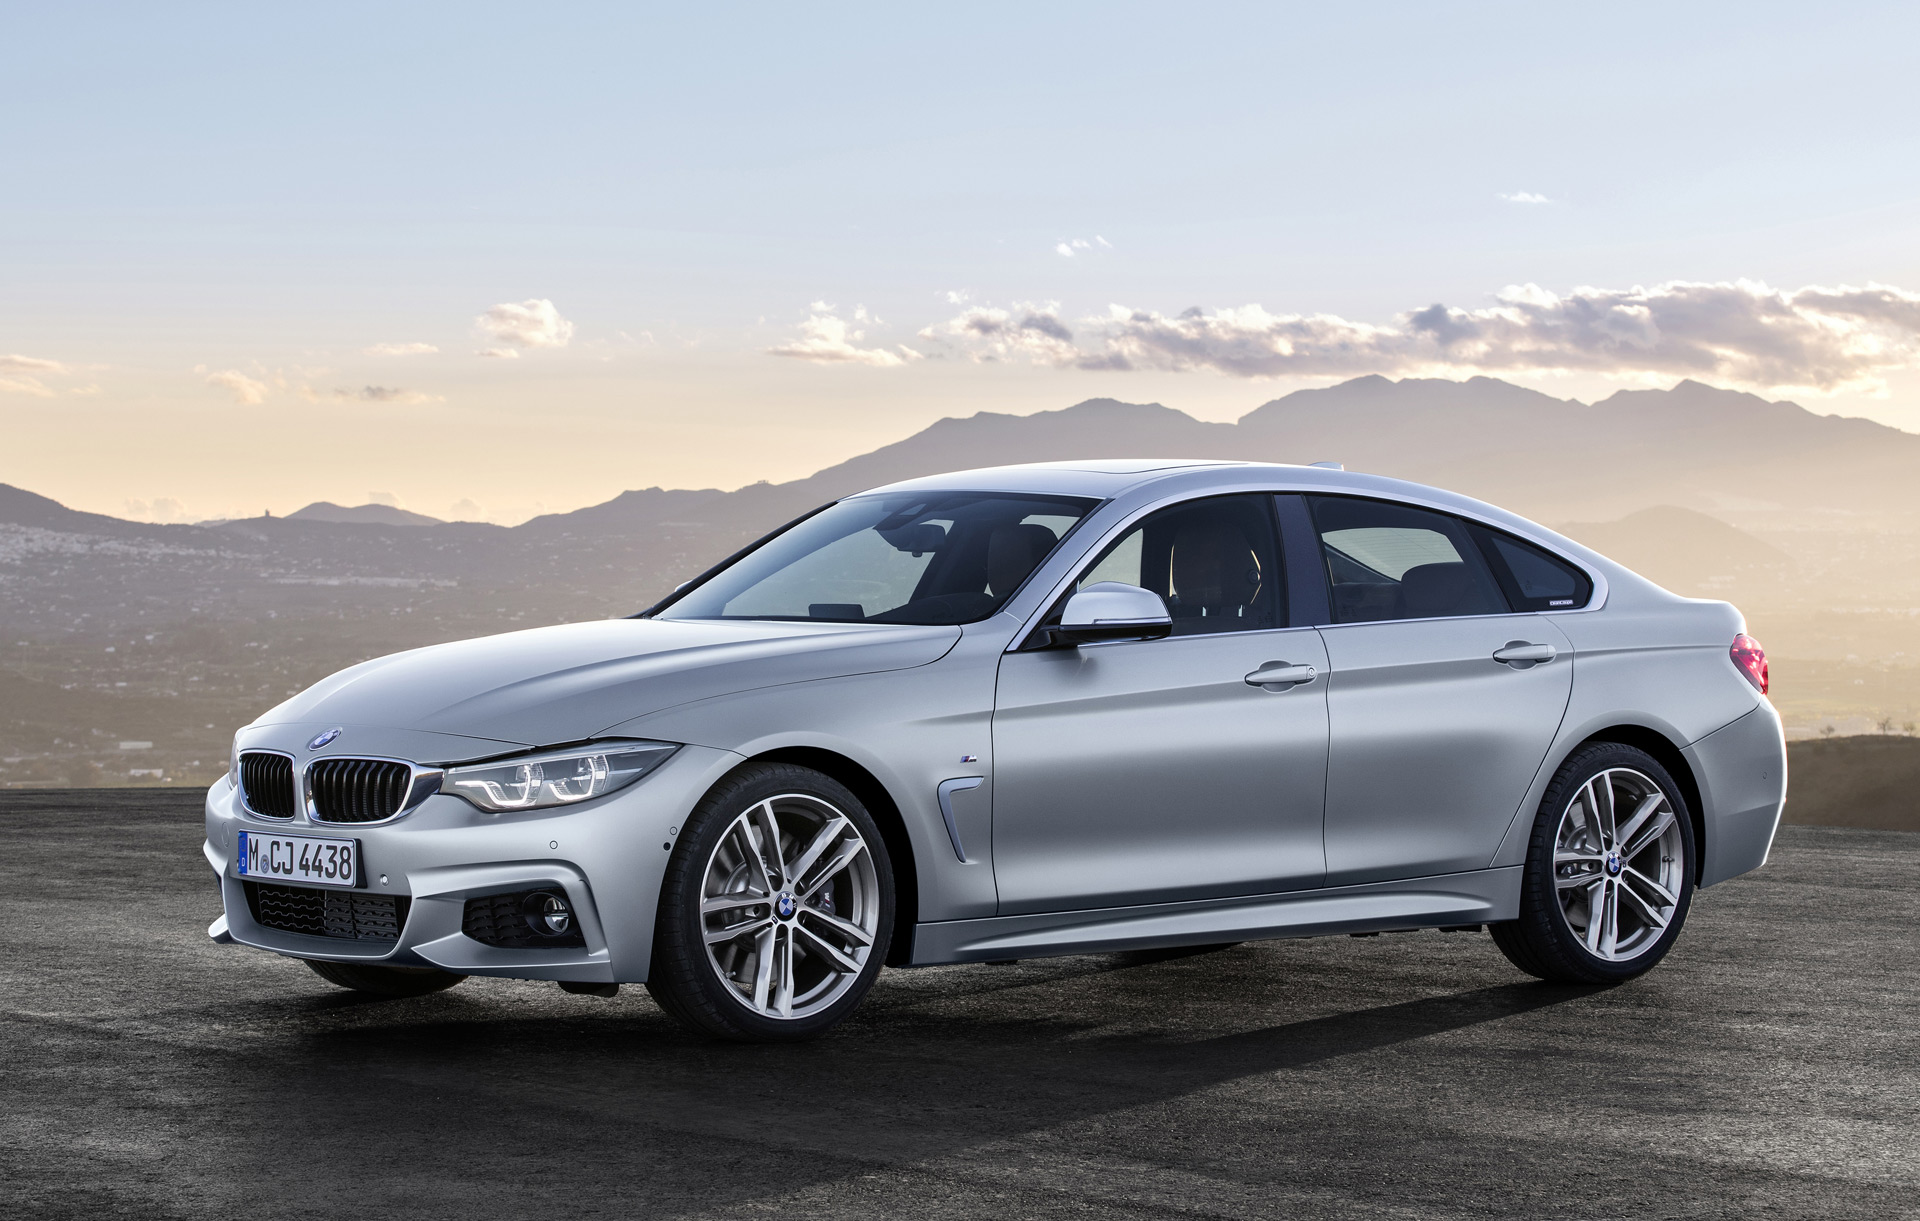 new and used bmw 4 series prices photos reviews specs the car connection. Black Bedroom Furniture Sets. Home Design Ideas